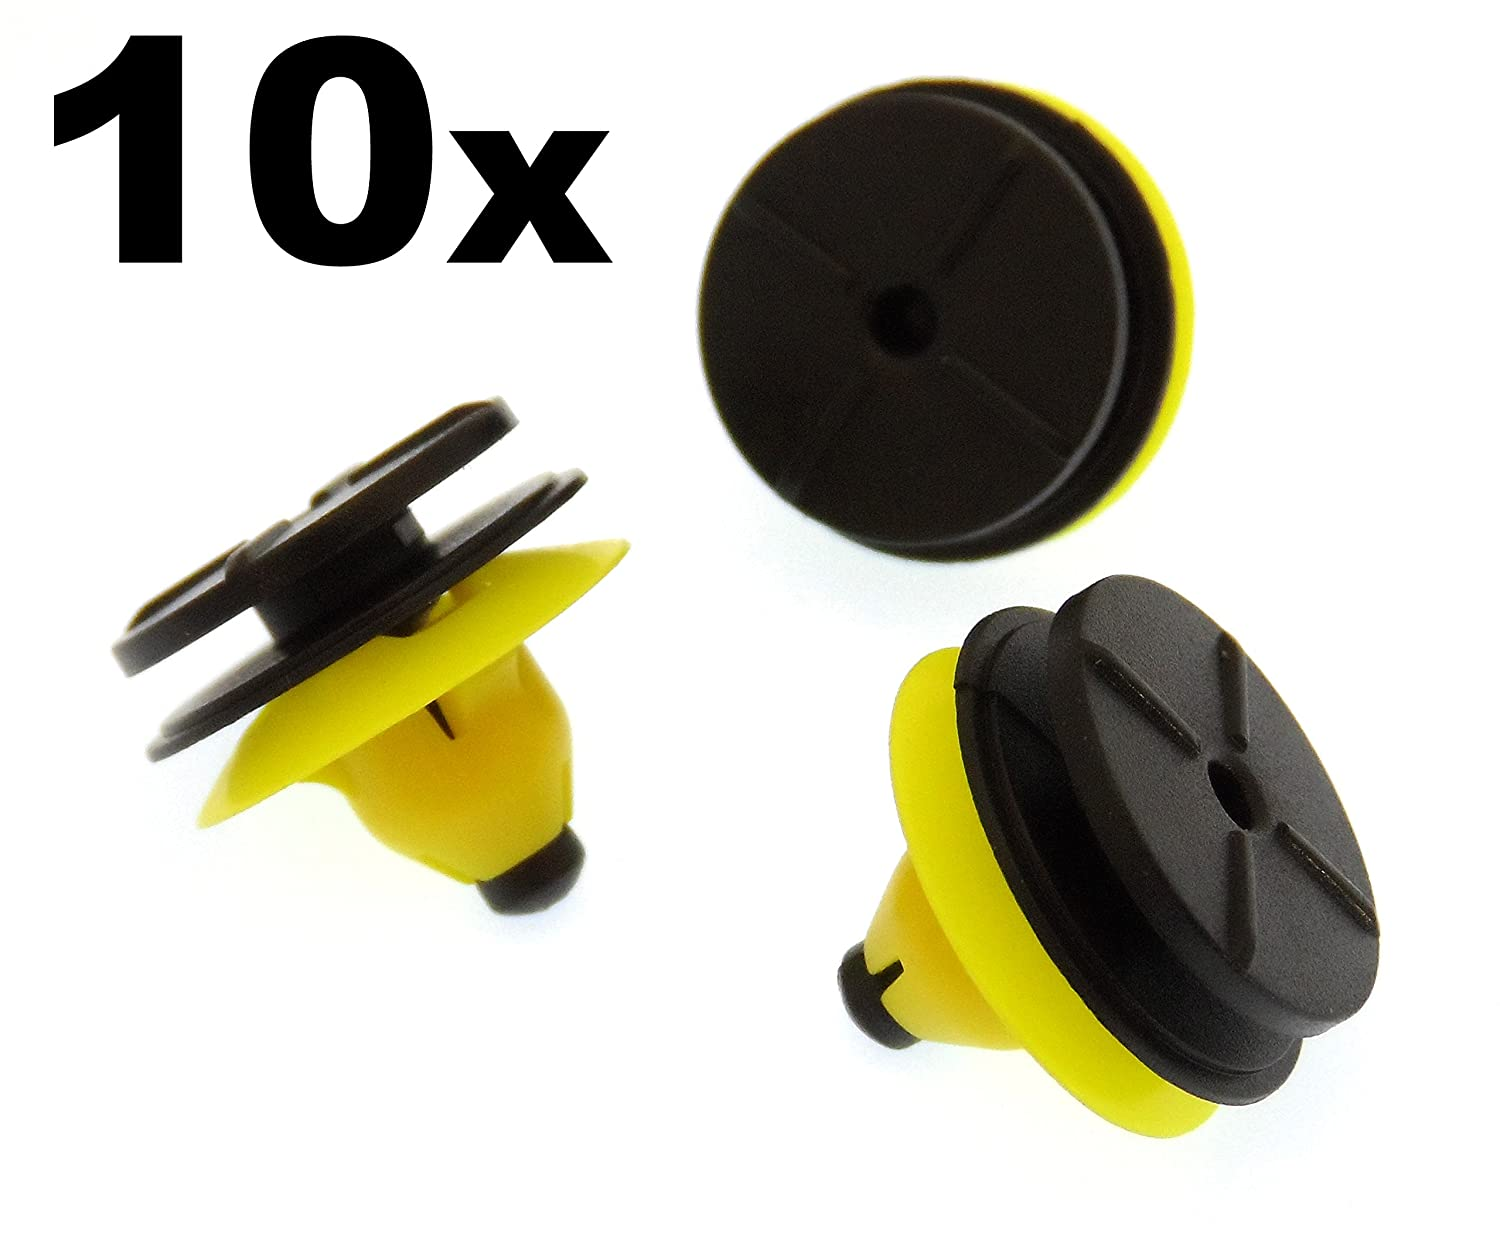 10x Plastic Trim Clips for Side Skirts, Sill Mouldings & Rocker Cover Trim (30624192) 227sparts